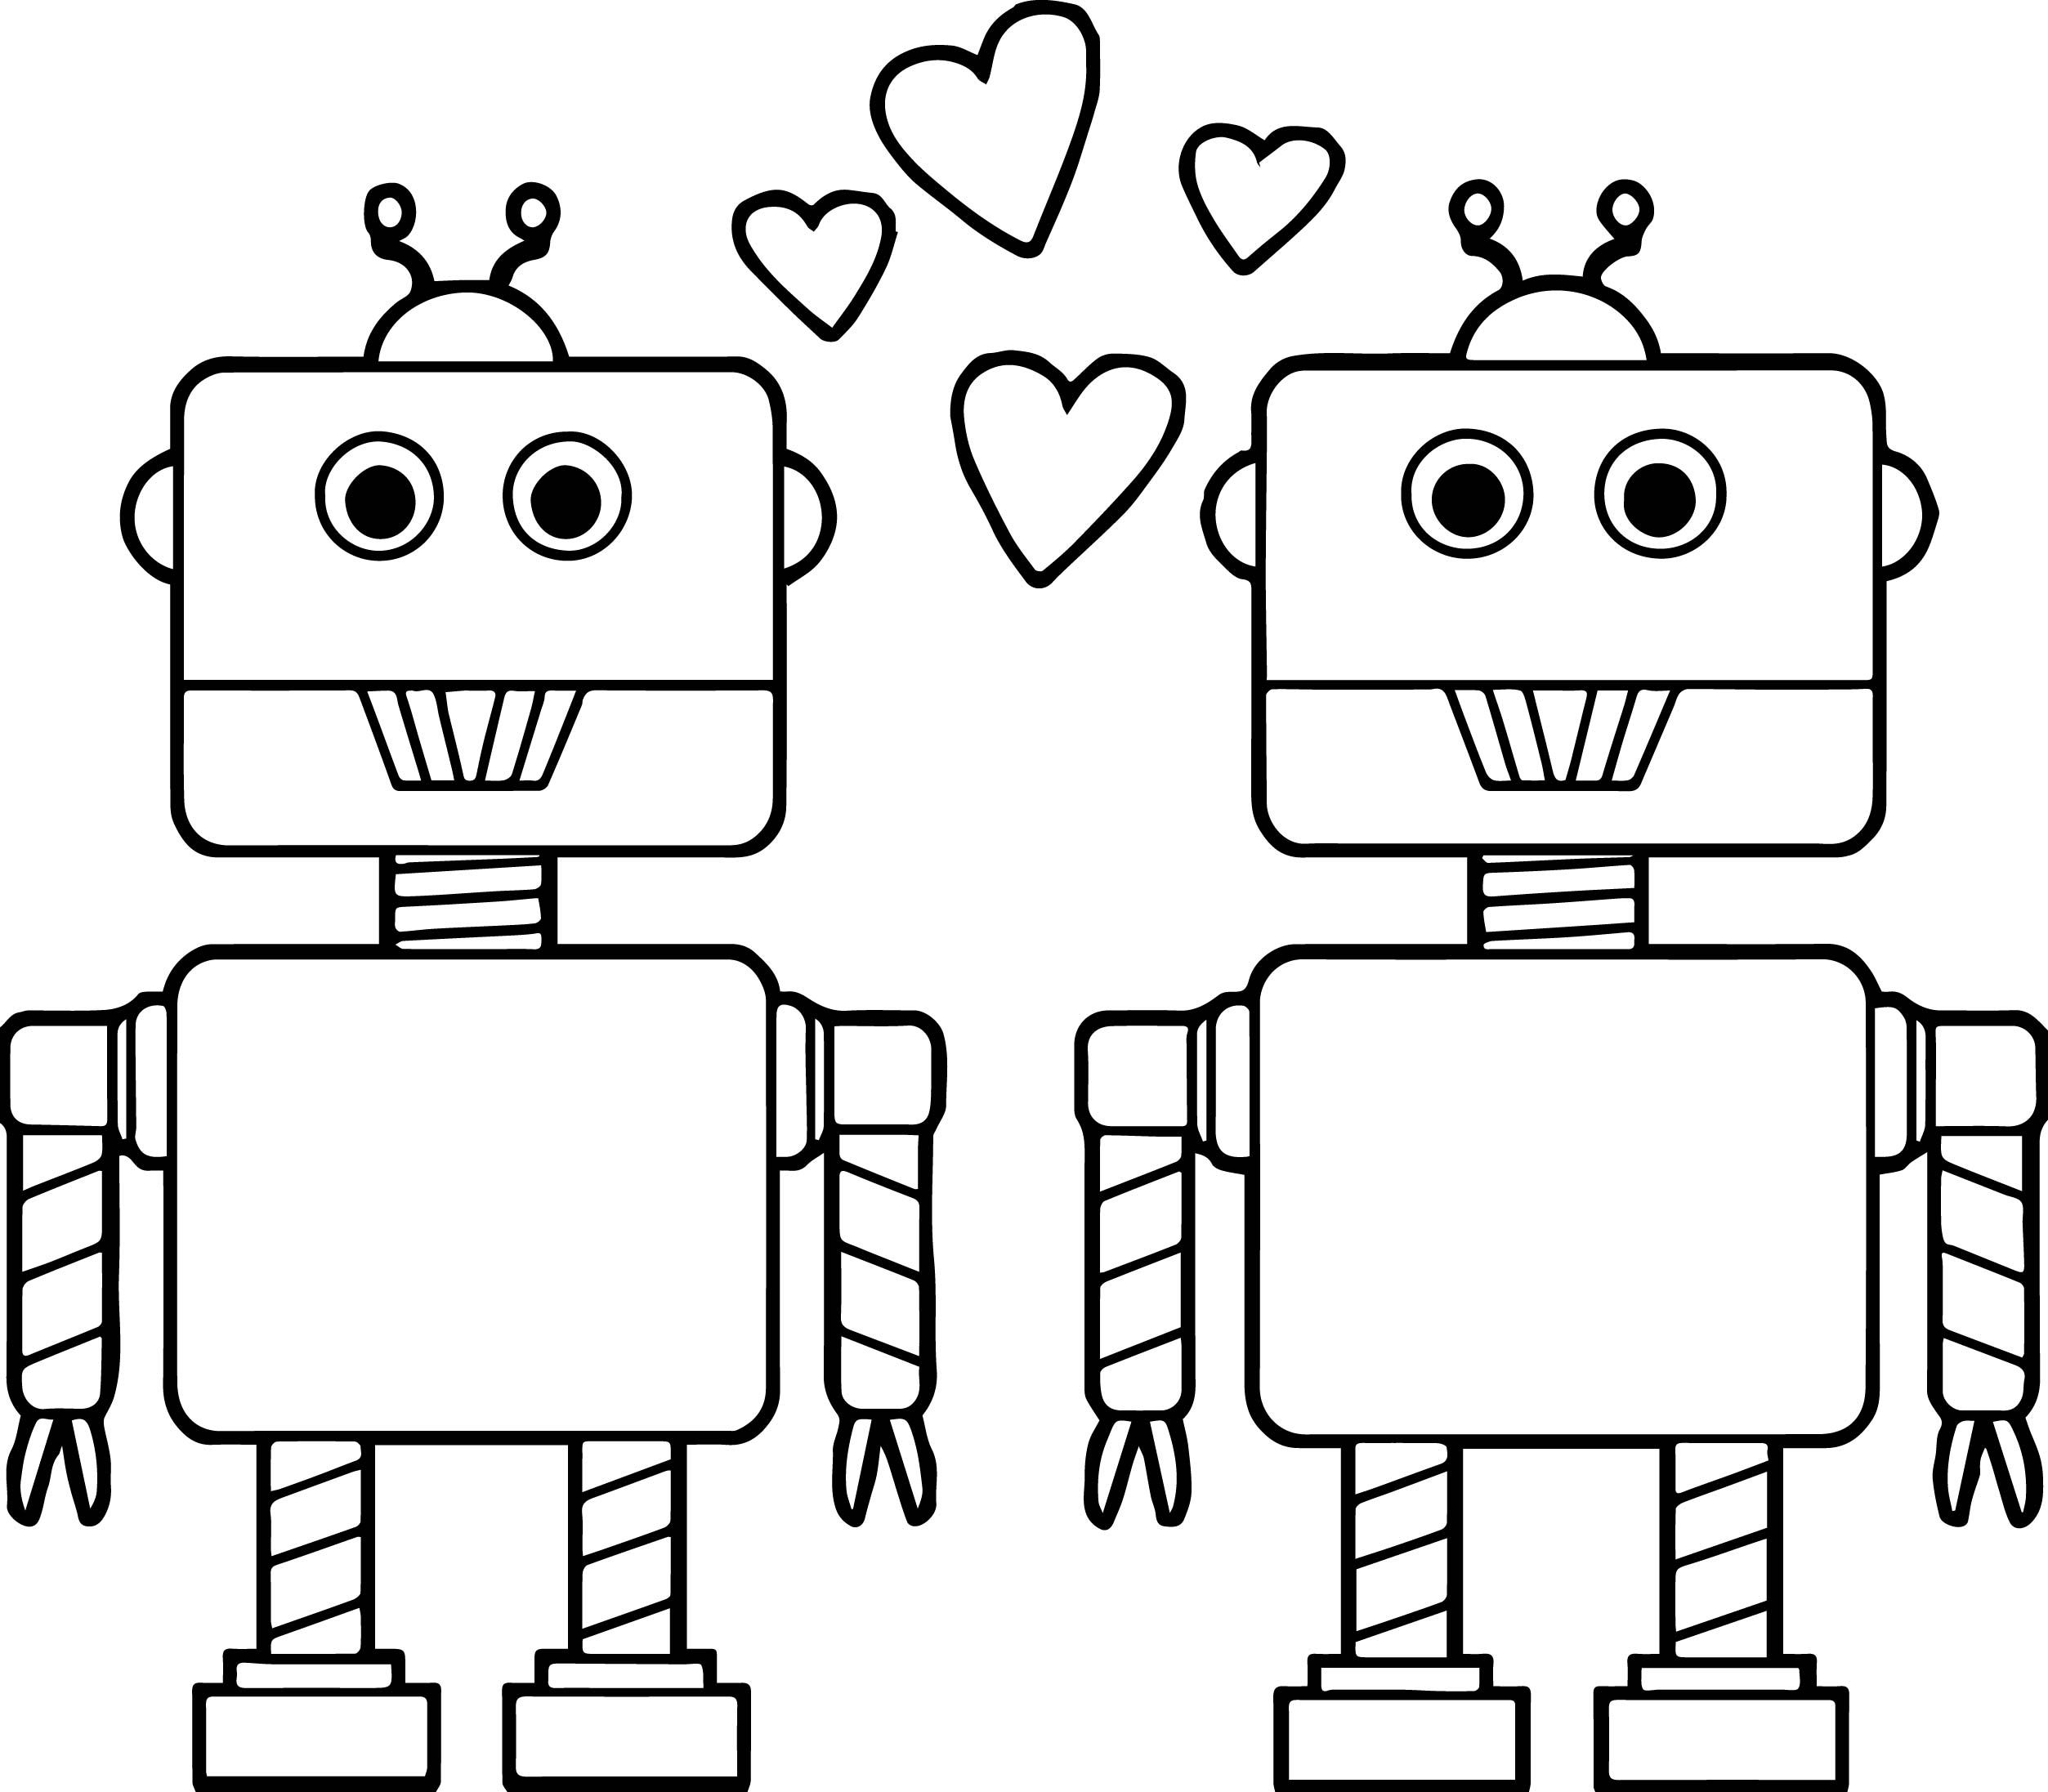 Awesome Couple Robot Coloring Page Valentines Day Coloring Page Valentine Coloring Pages Valentines Robots